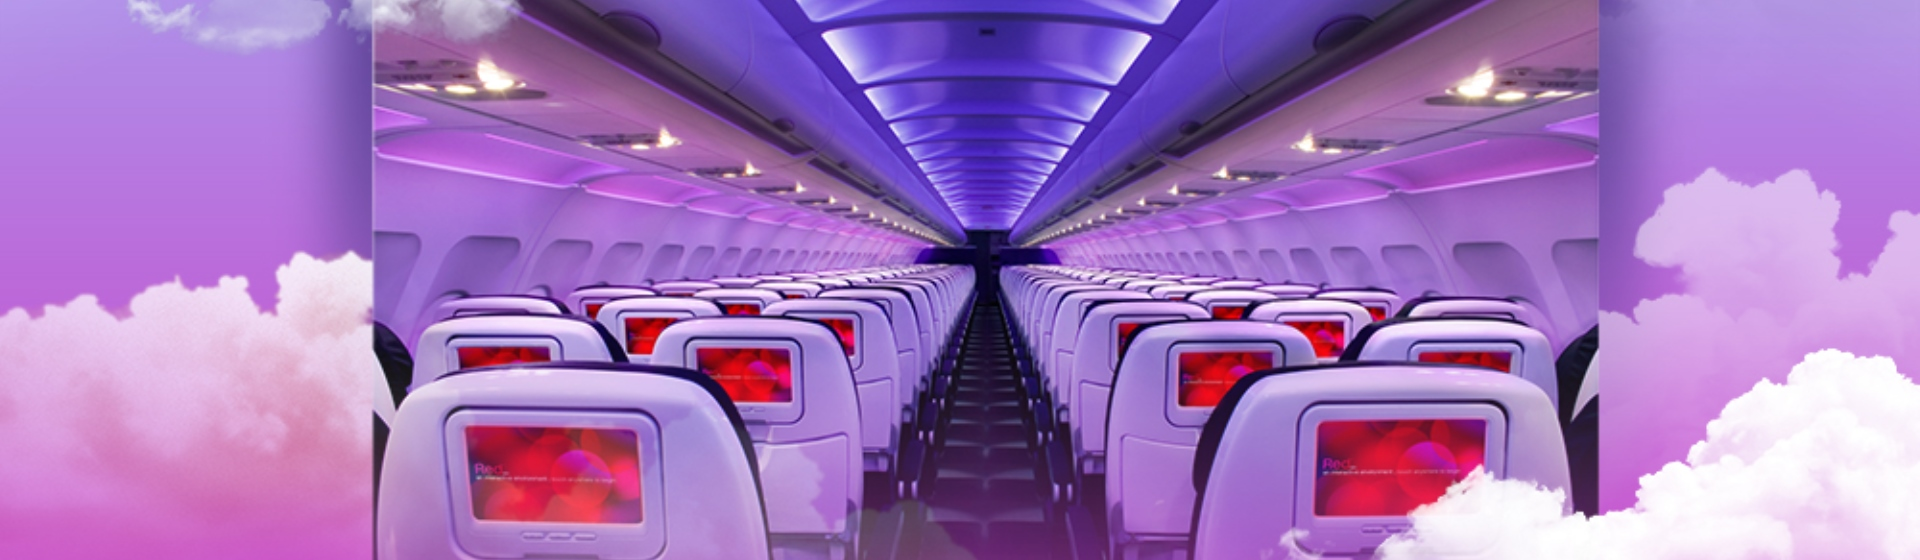 Virgin America's Cool Cabin